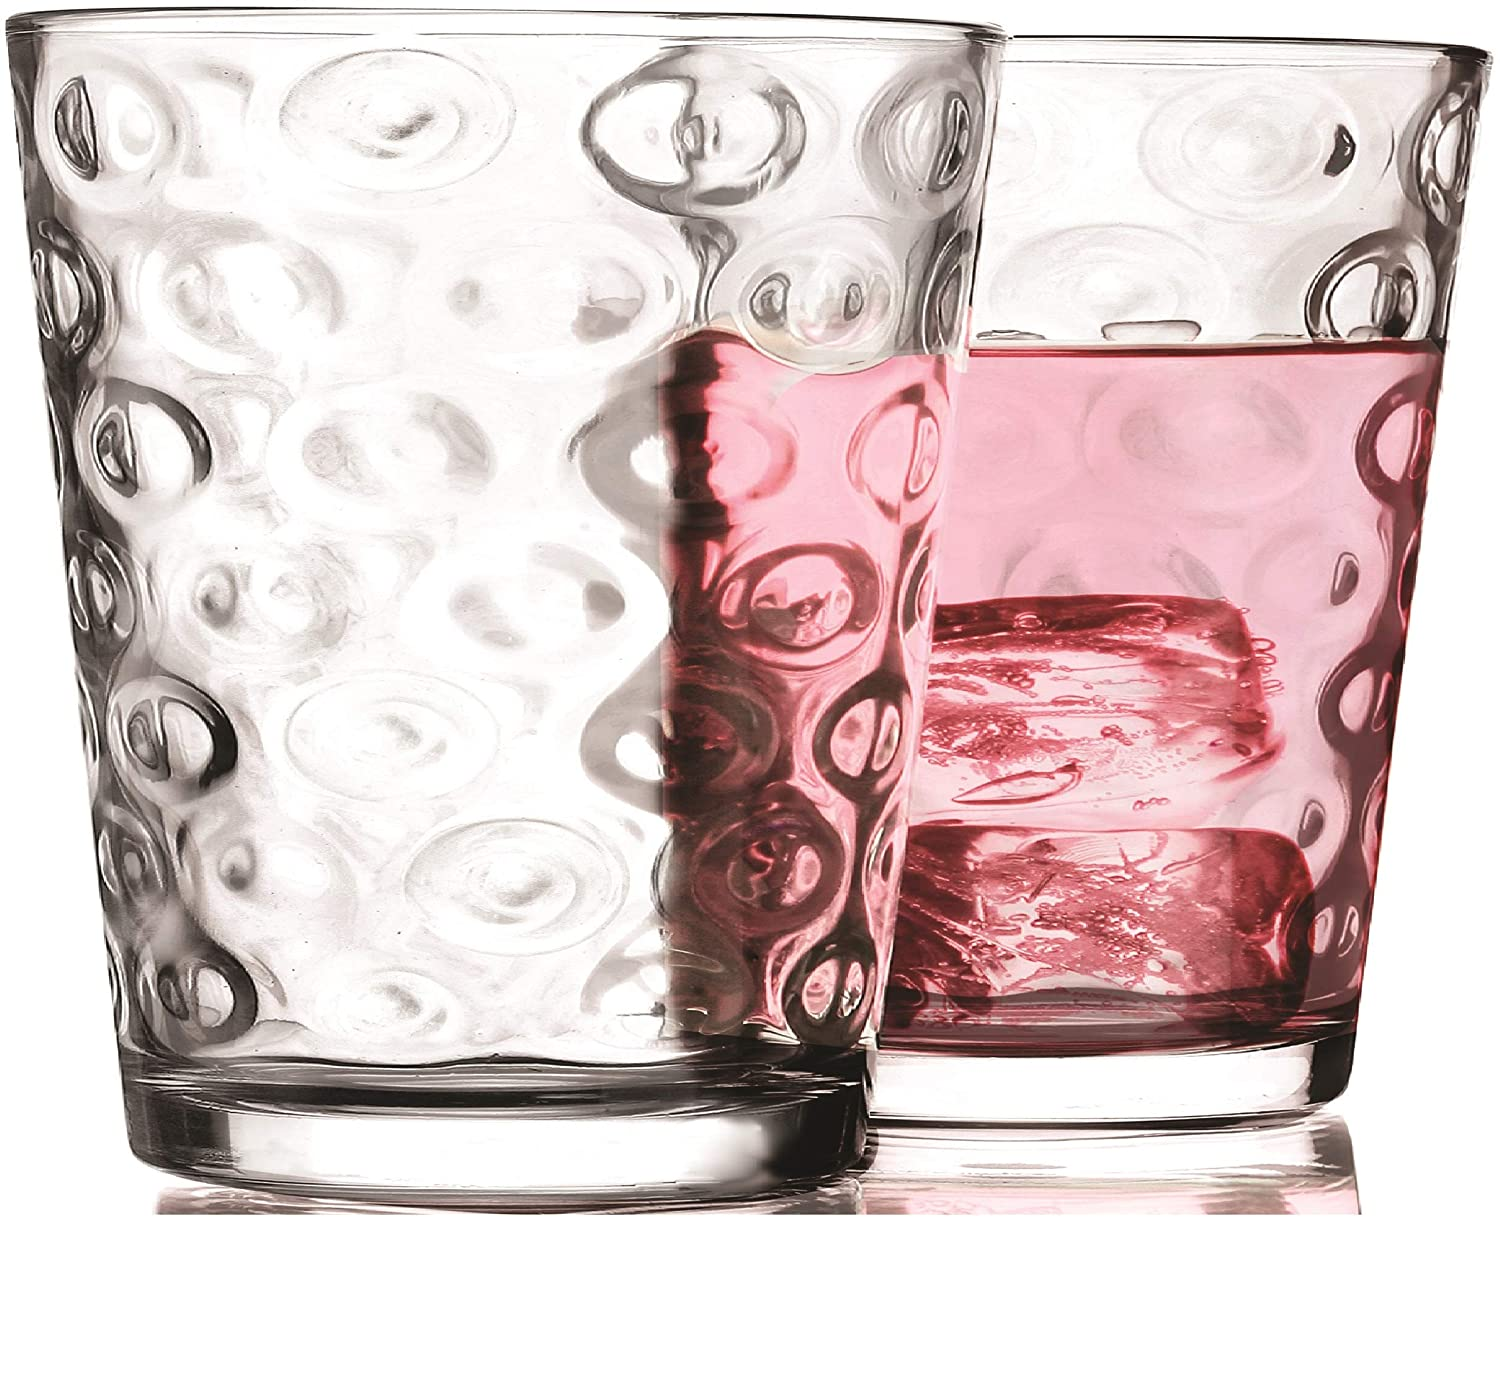 4 piece Set 7 oz Beer Milk Home /& Kitchen Entertainment Glassware for Water Heavy Base Tumbler Beverage Ice Tea Cups Clear Whiskey Bar Decor Circleware 40182 Circles Juice Drinking Glasses